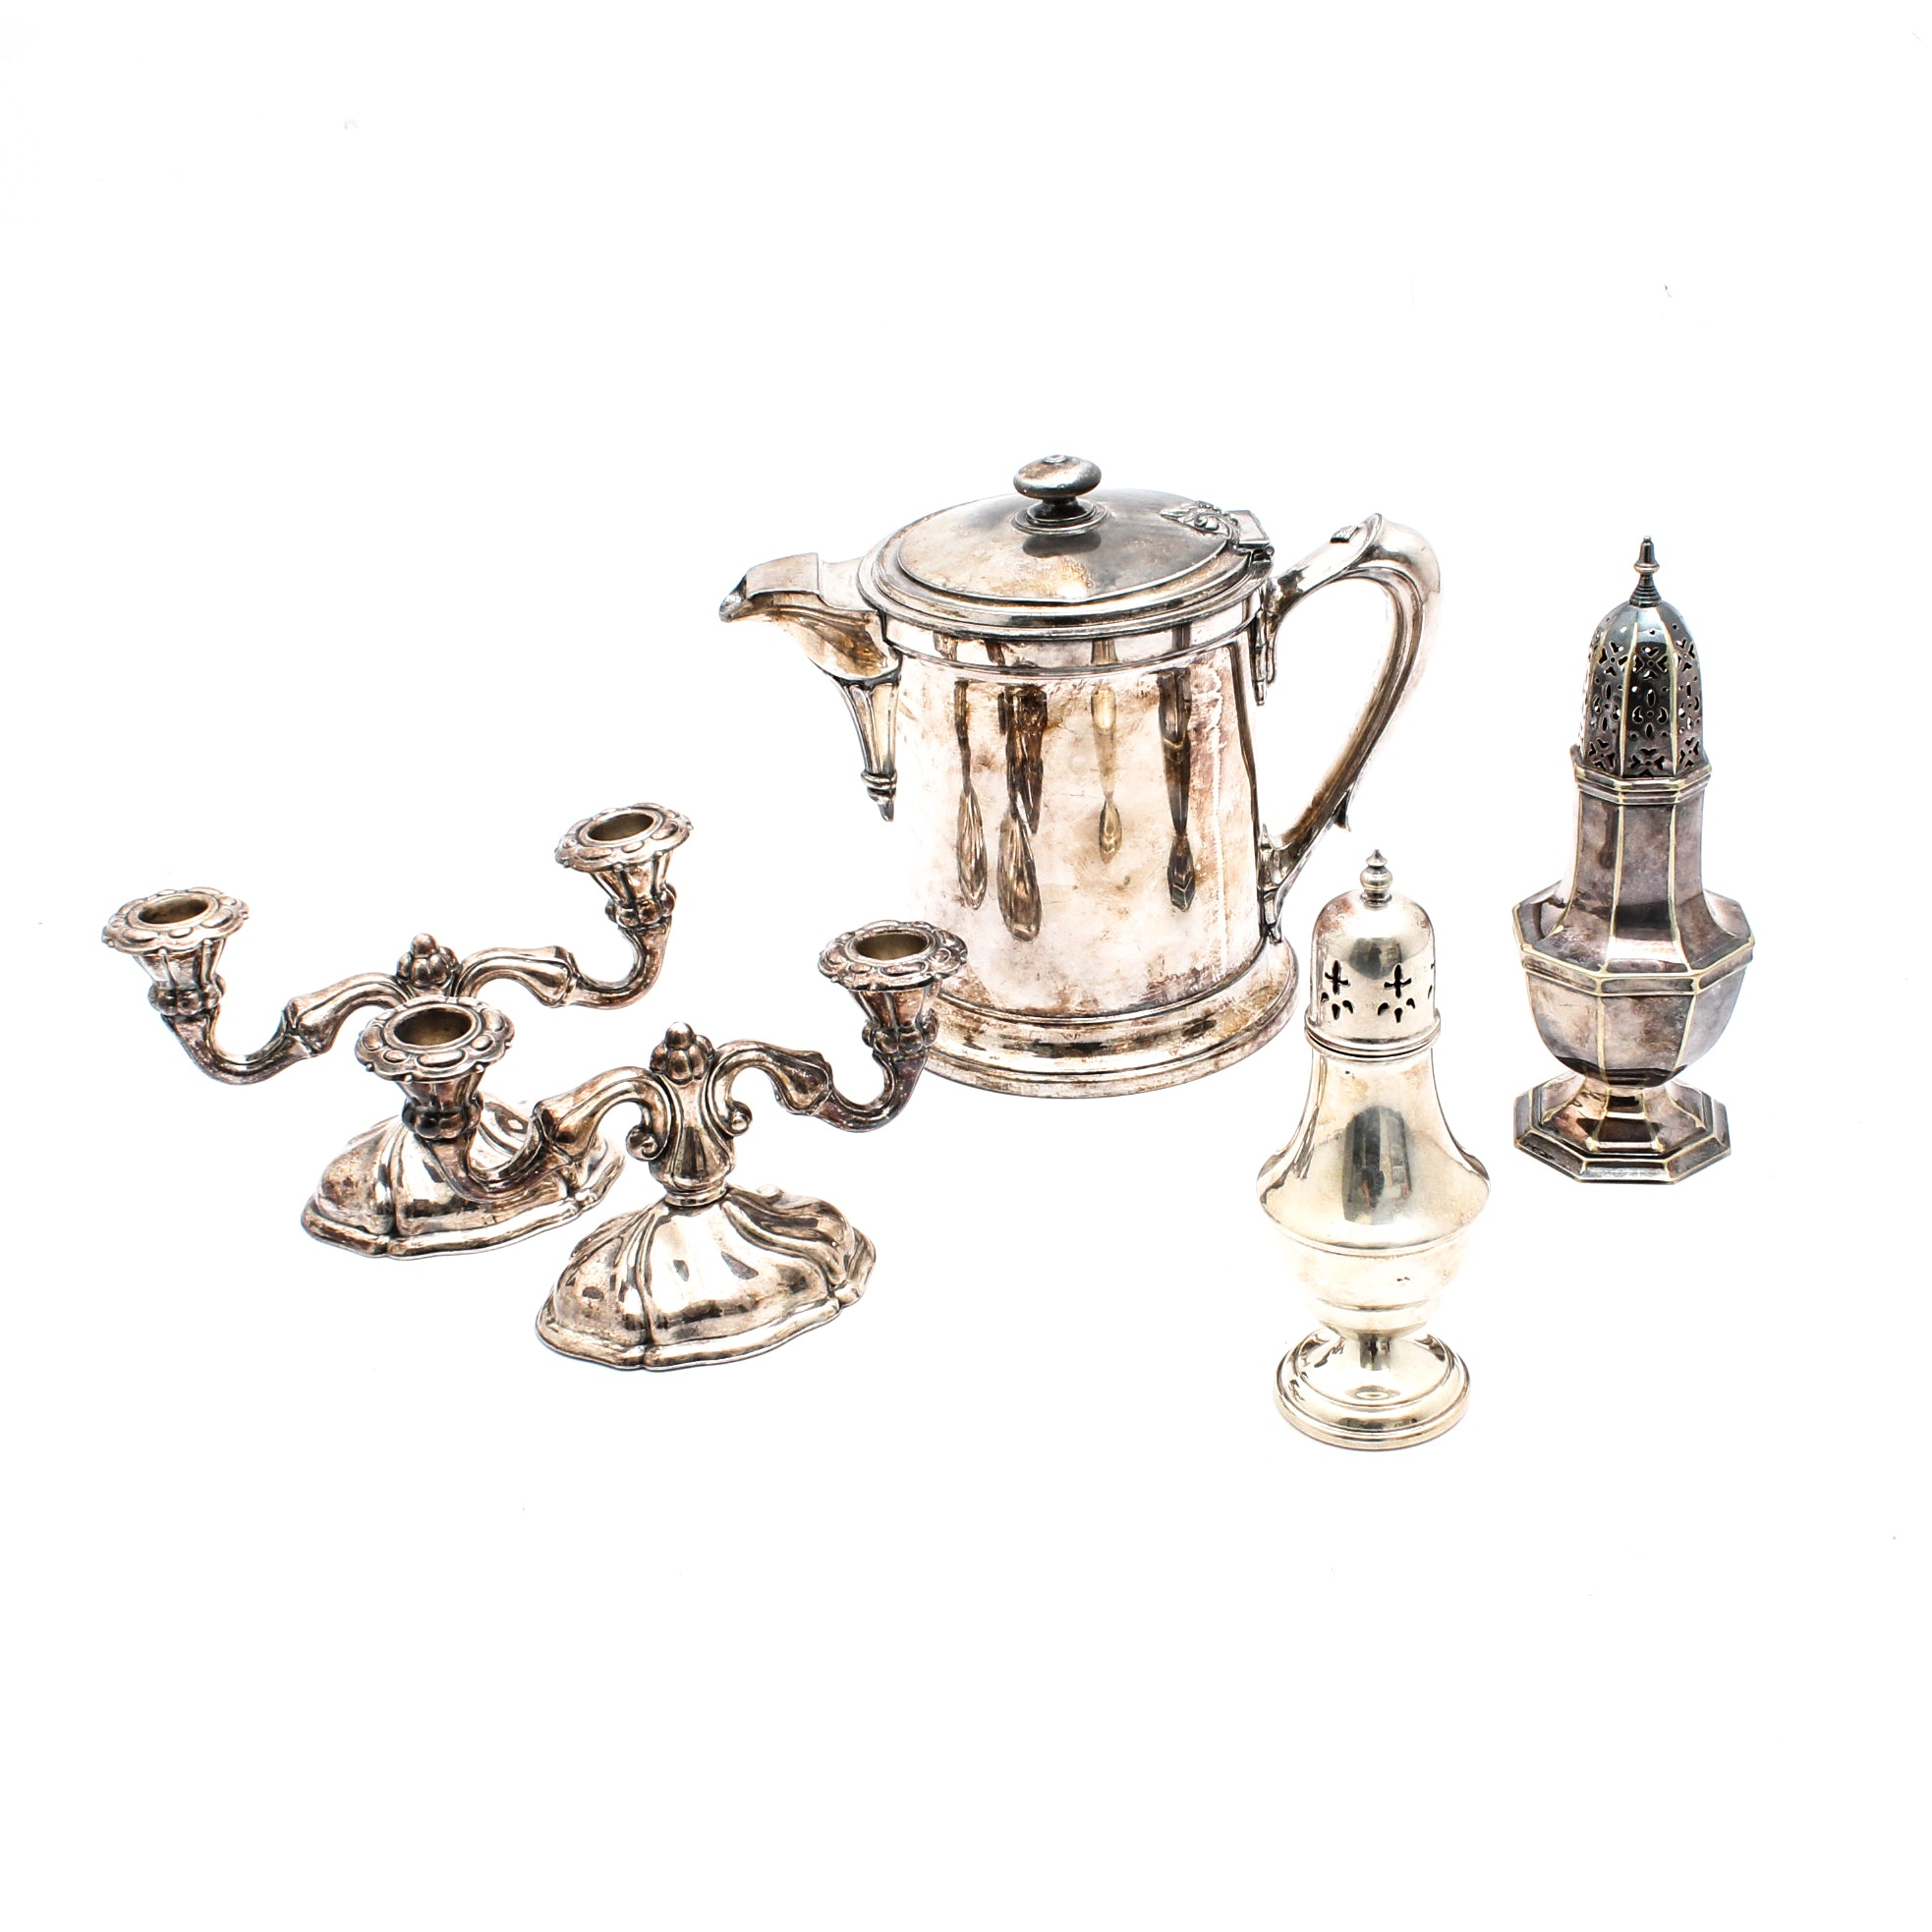 Silver Plate Muffineers, Enamel Lined Pitcher and Candle Holders